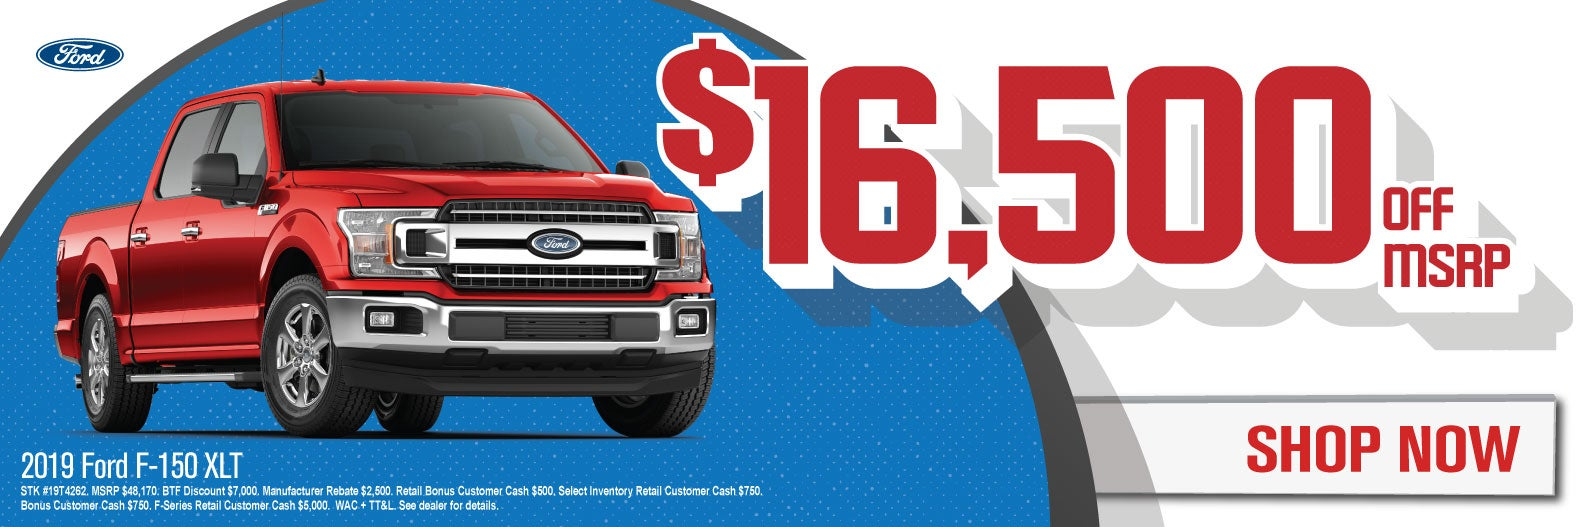 Ford Dealership Greenville Tx >> Ford Dealer In Mckinney Tx Used Cars Mckinney Bob Tomes Ford